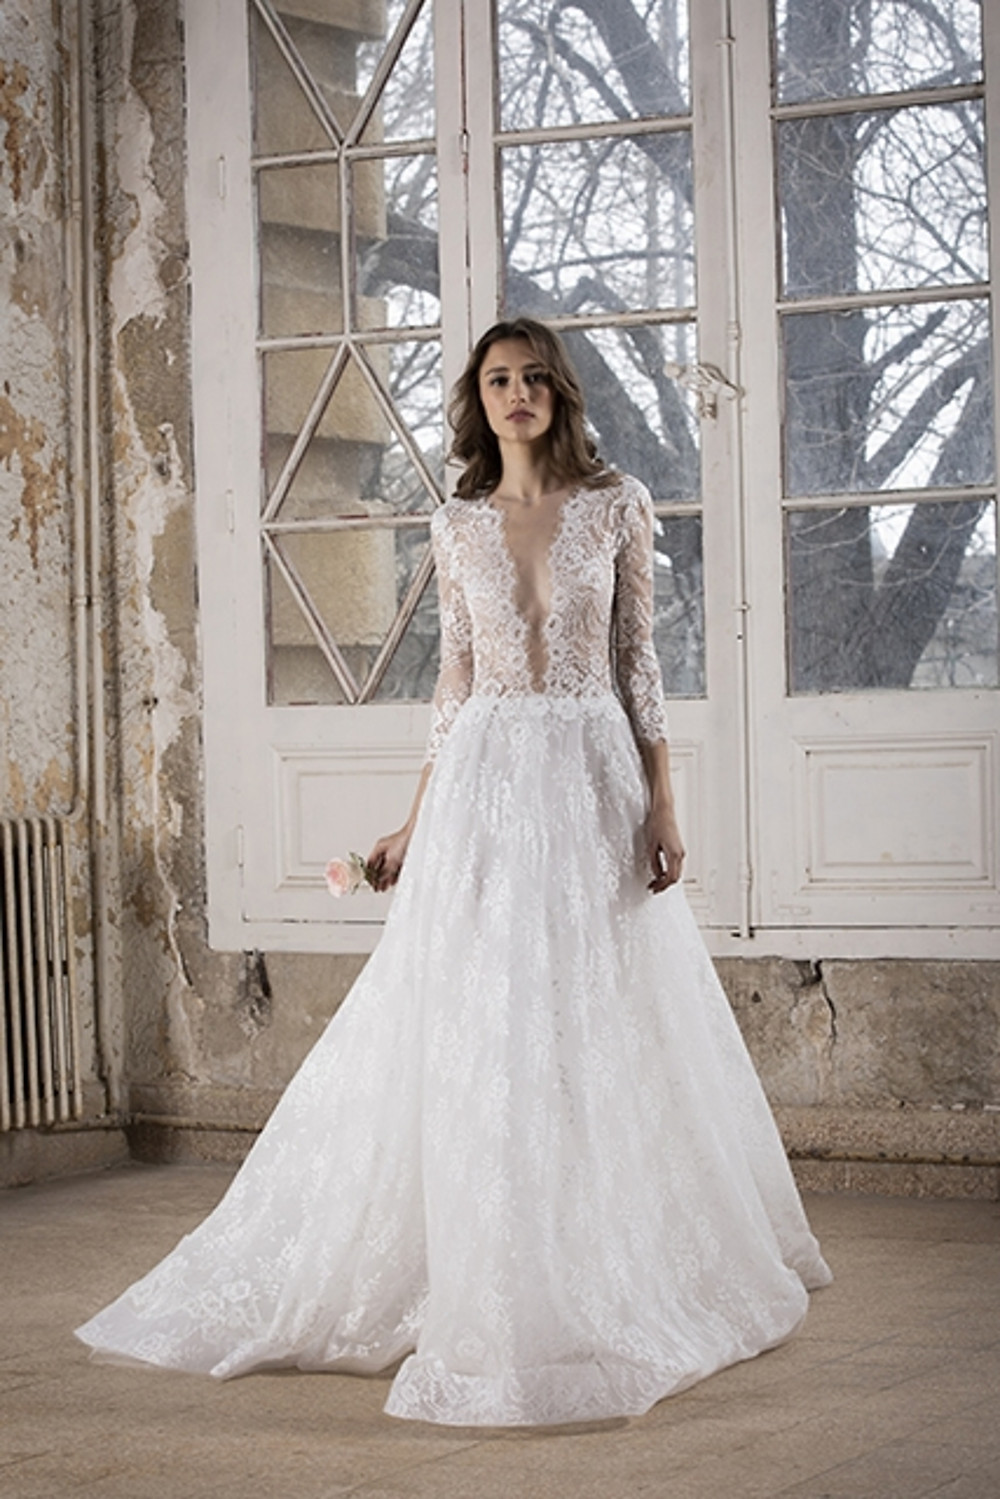 A deep-V wedding gown featuring a lace bodice with a plunging neckline, three quarter sleeves, and an embroidered tulle skirt